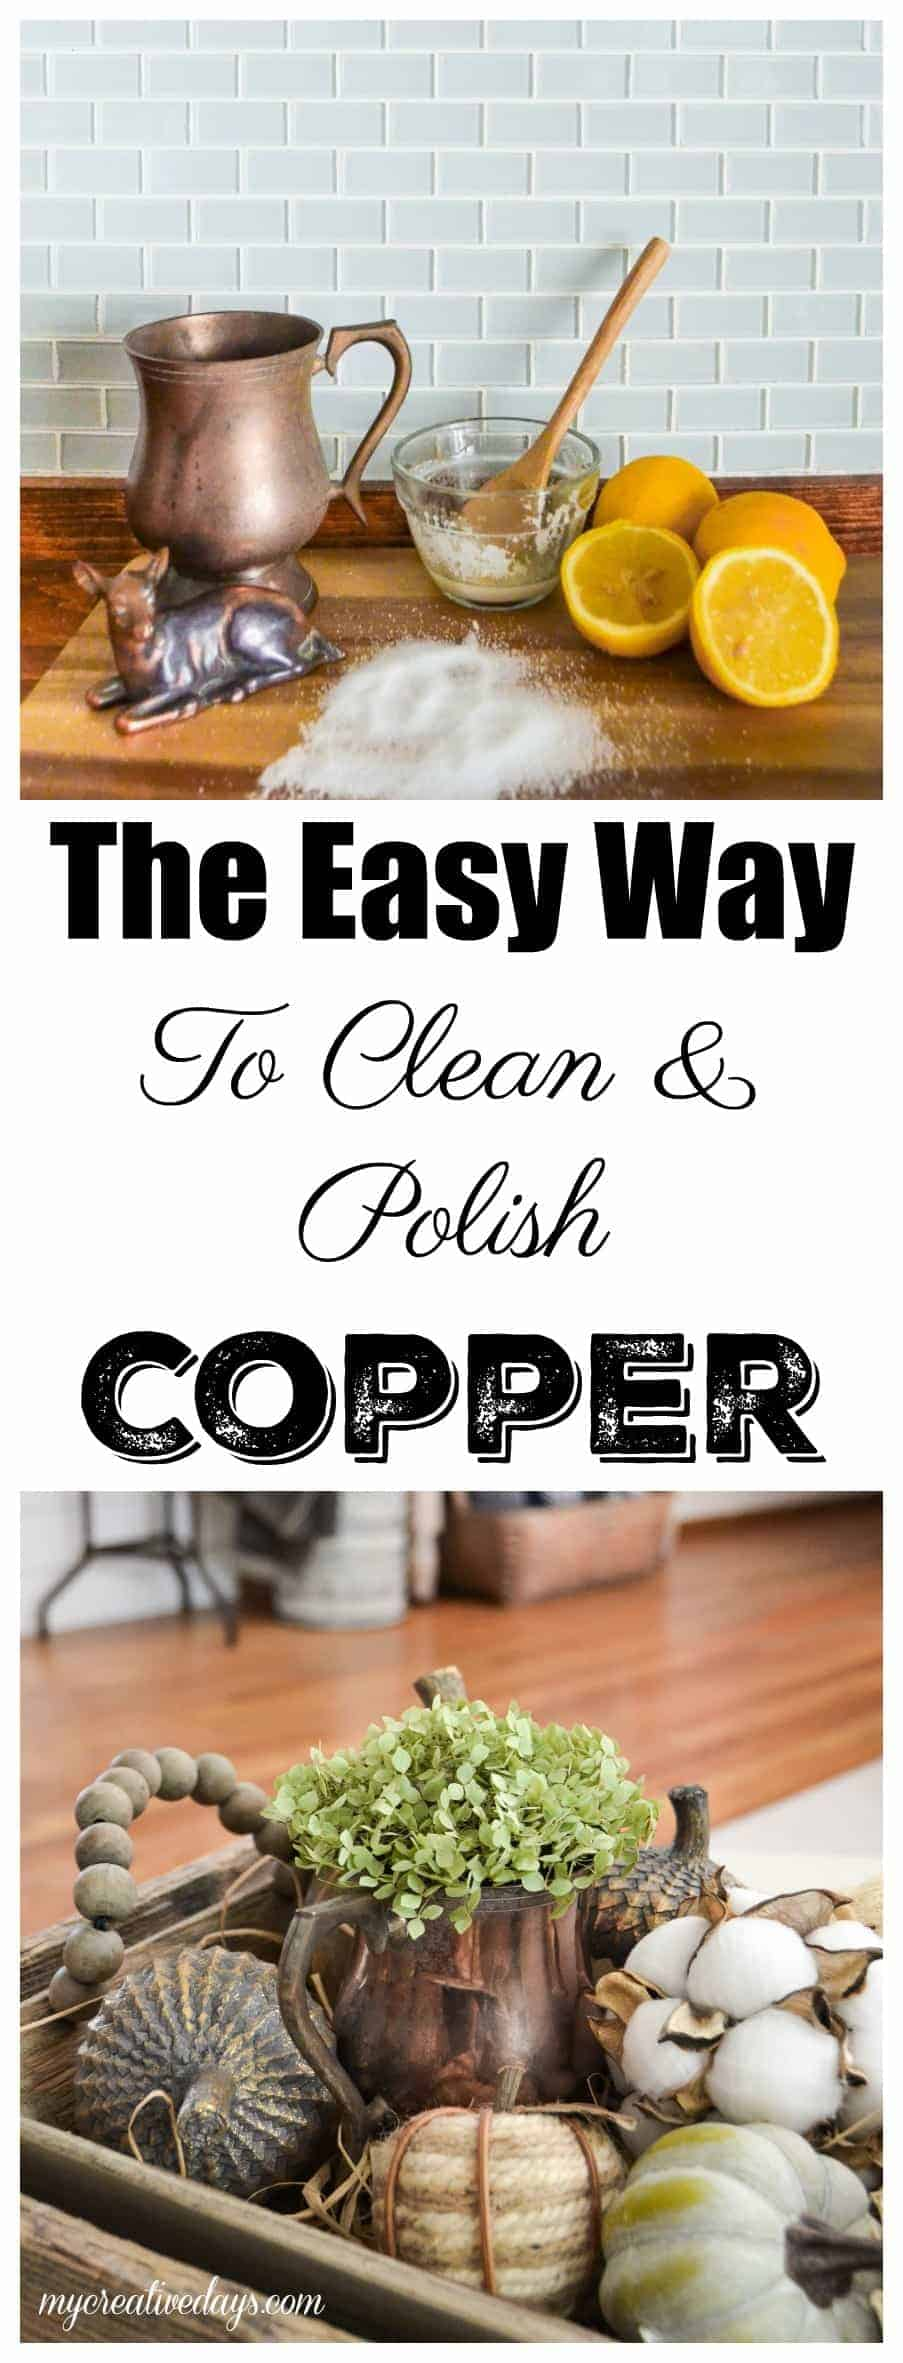 The Easy Way To Clean And Polish Copper